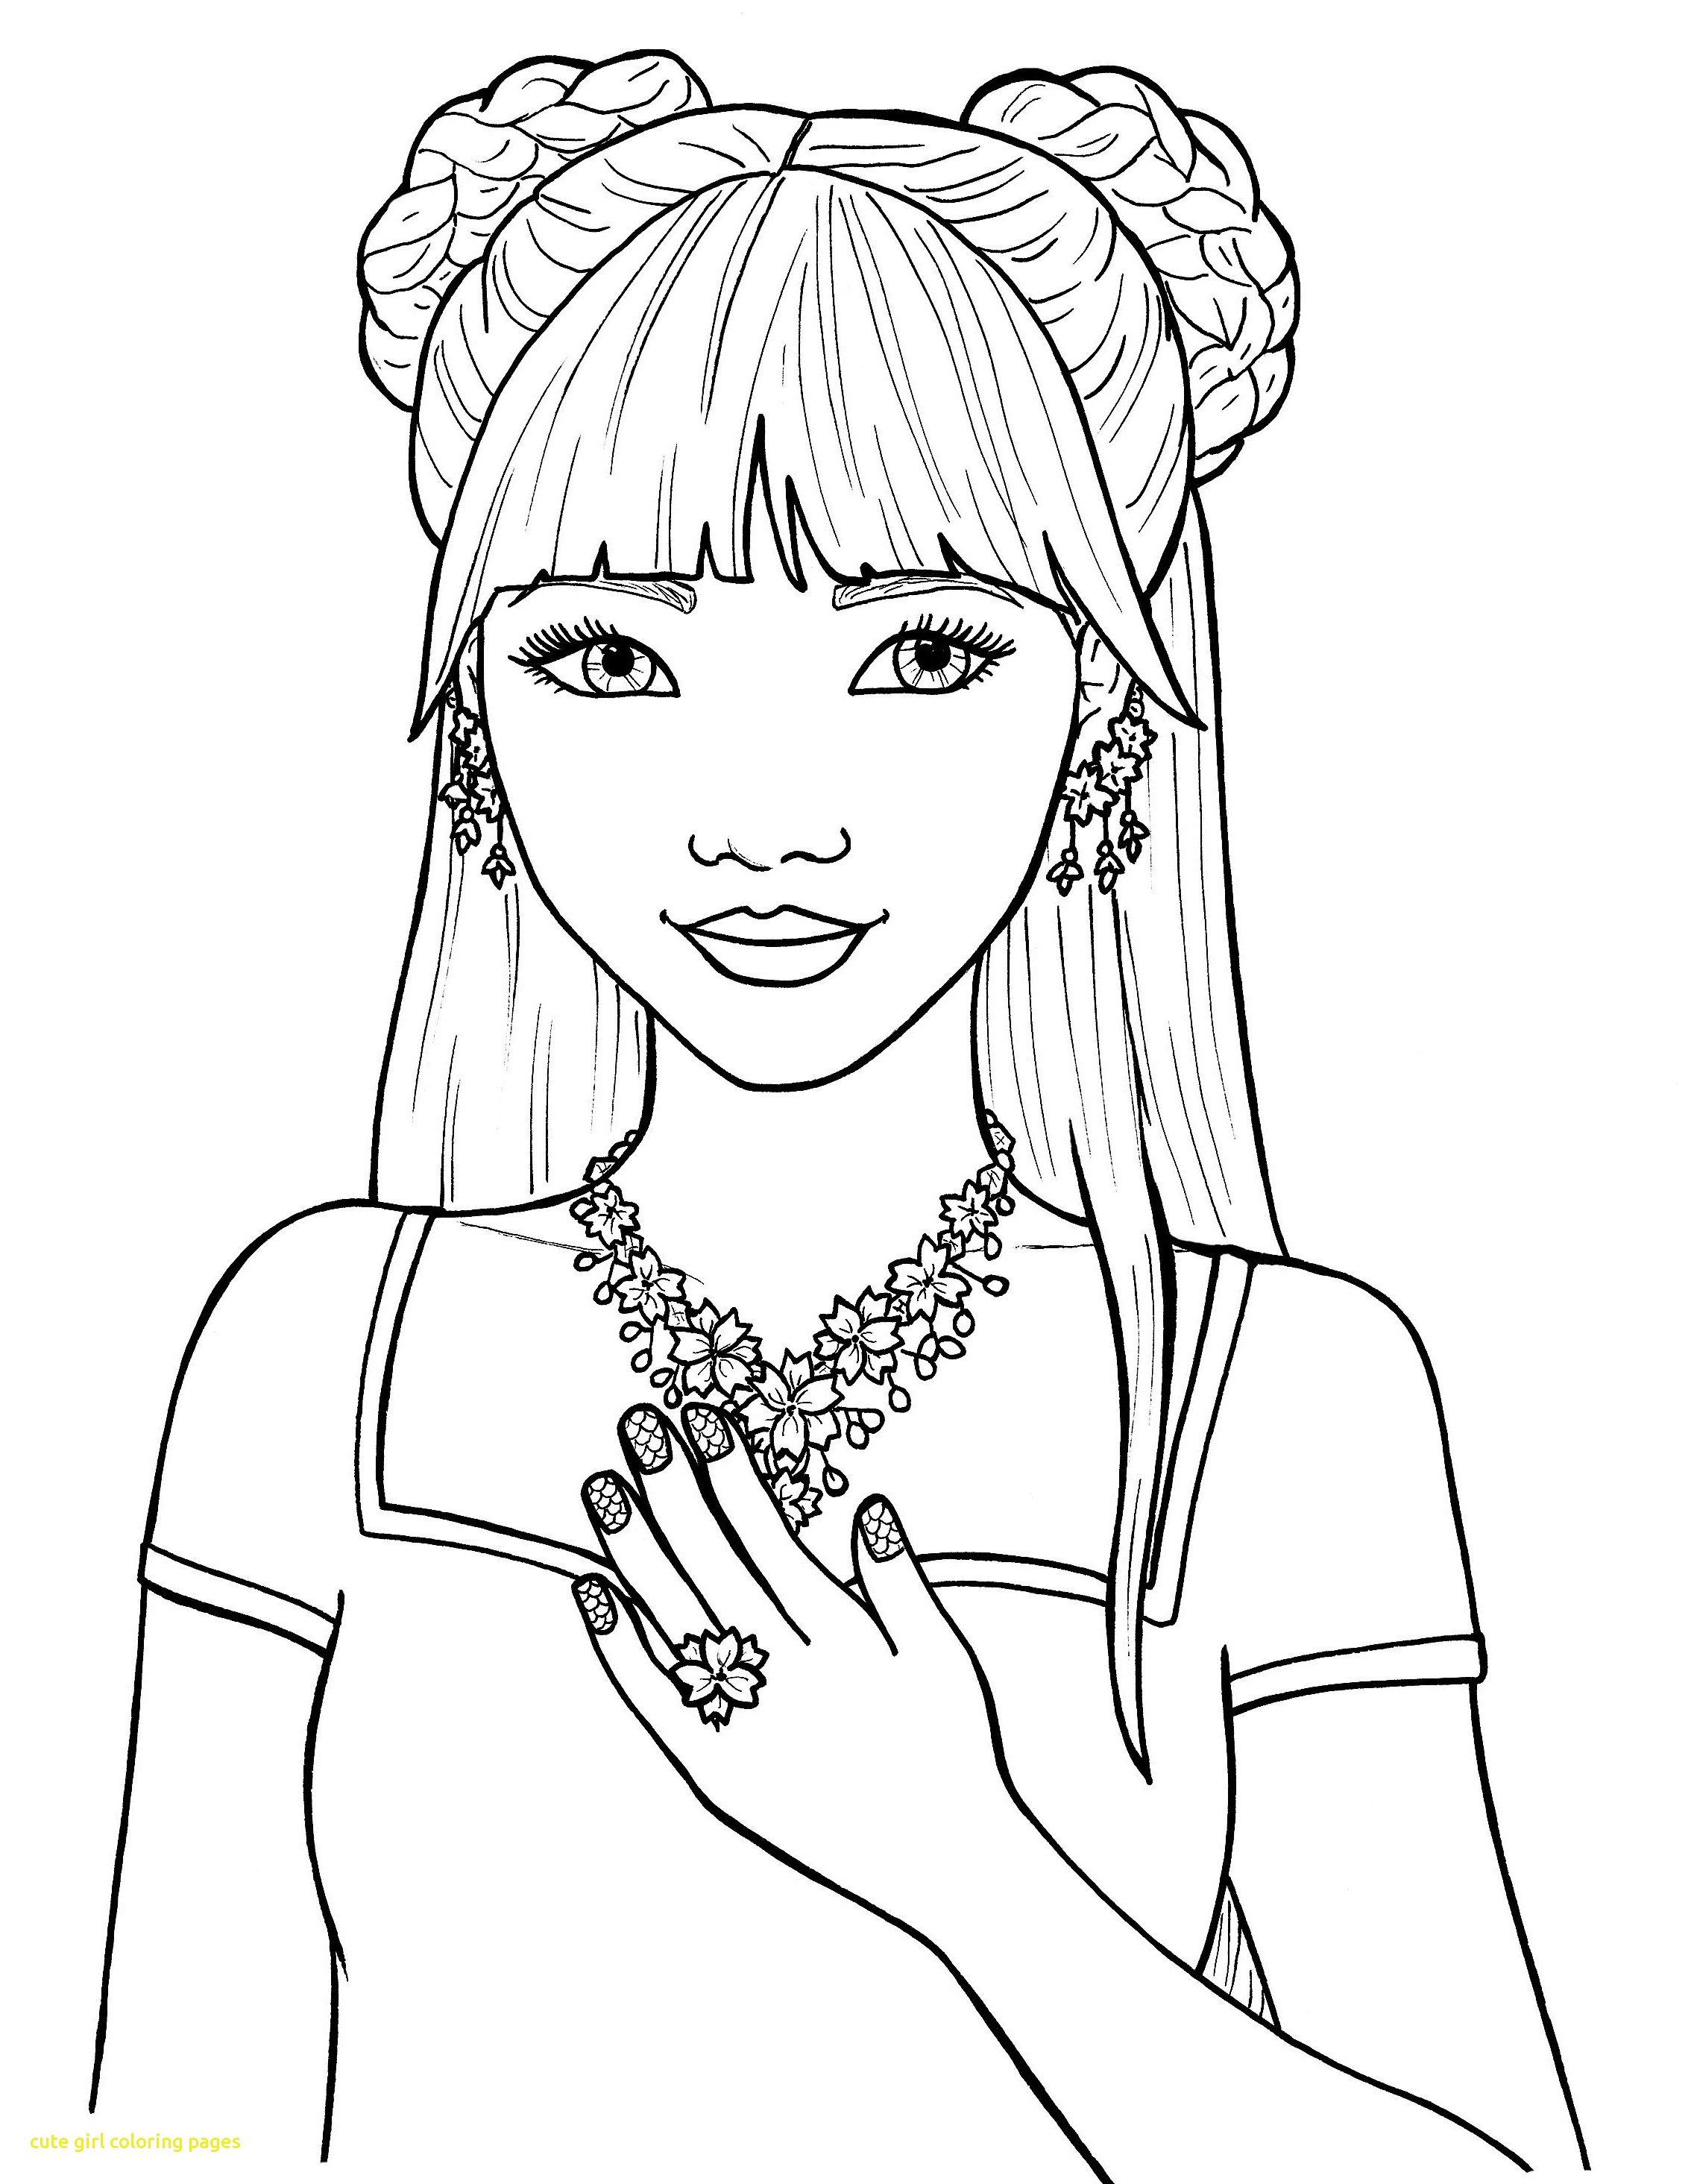 Printable Coloring Sheets For Girls  Coloring Pages for Girls Best Coloring Pages For Kids